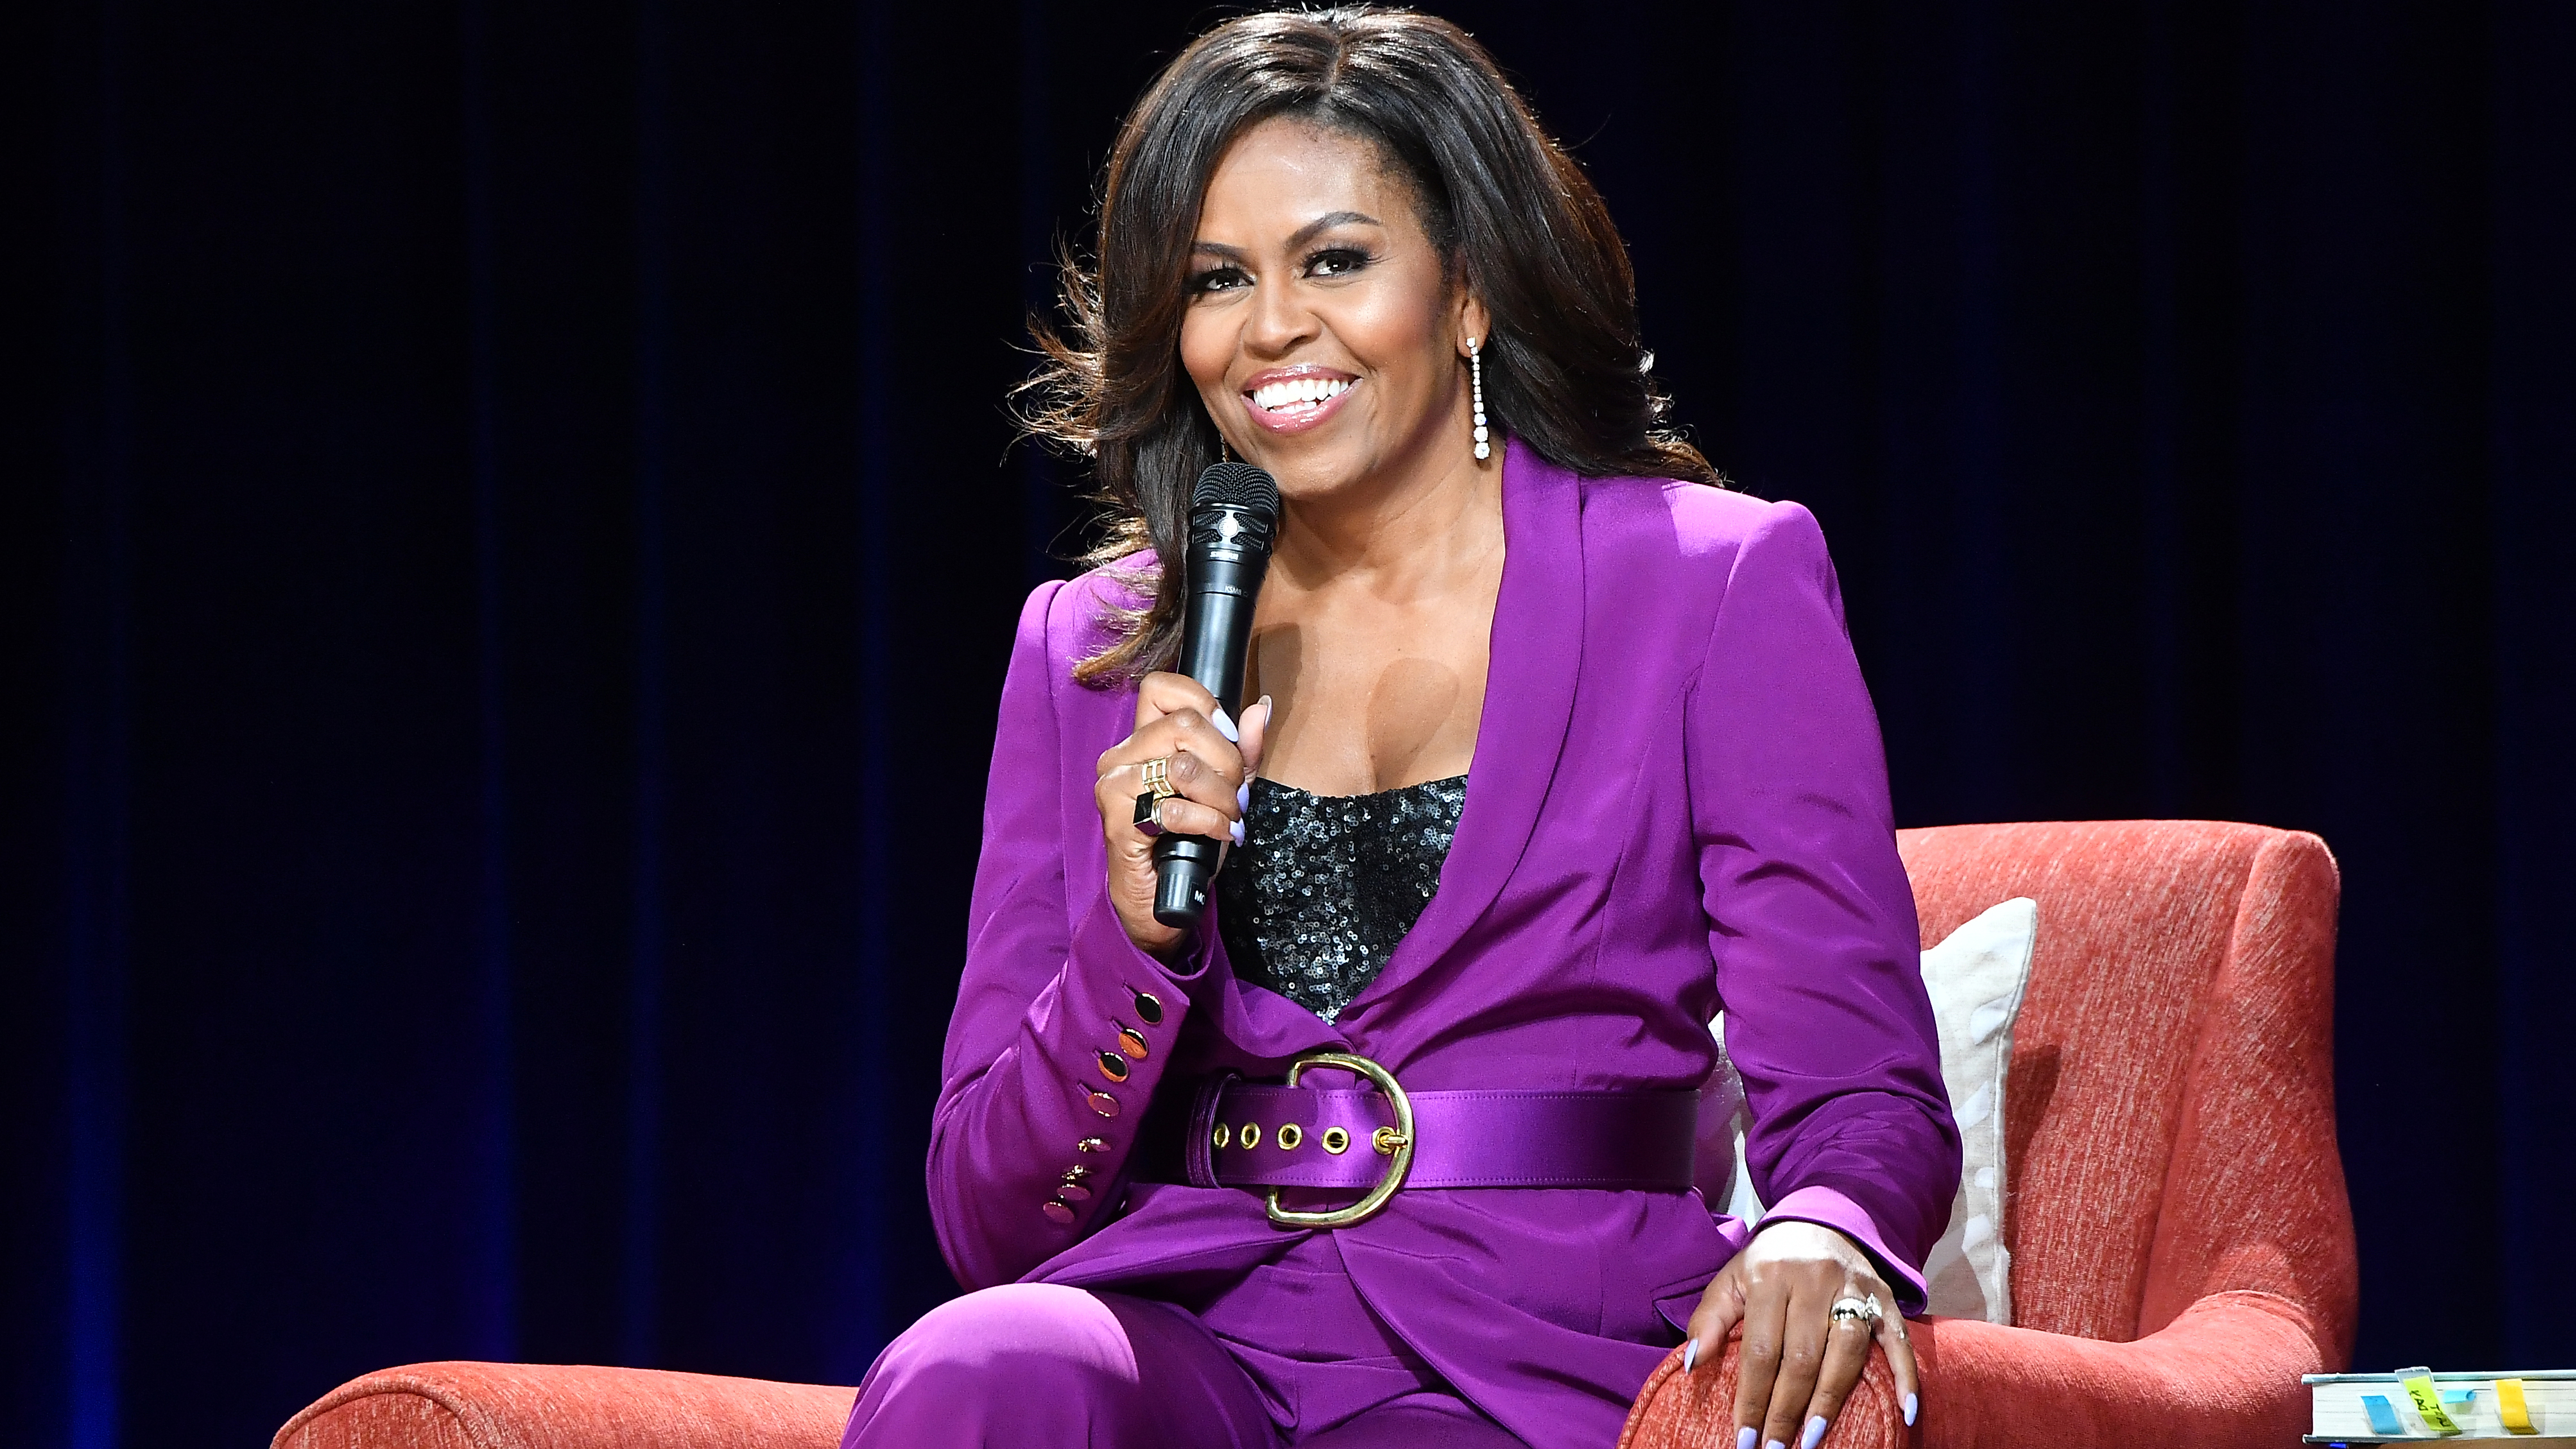 """Michelle Obama Had The Best Response To Jimmy Kimmel's """"Sick"""" Question About Her Sex Life With Husband Barack - Grazia USA"""